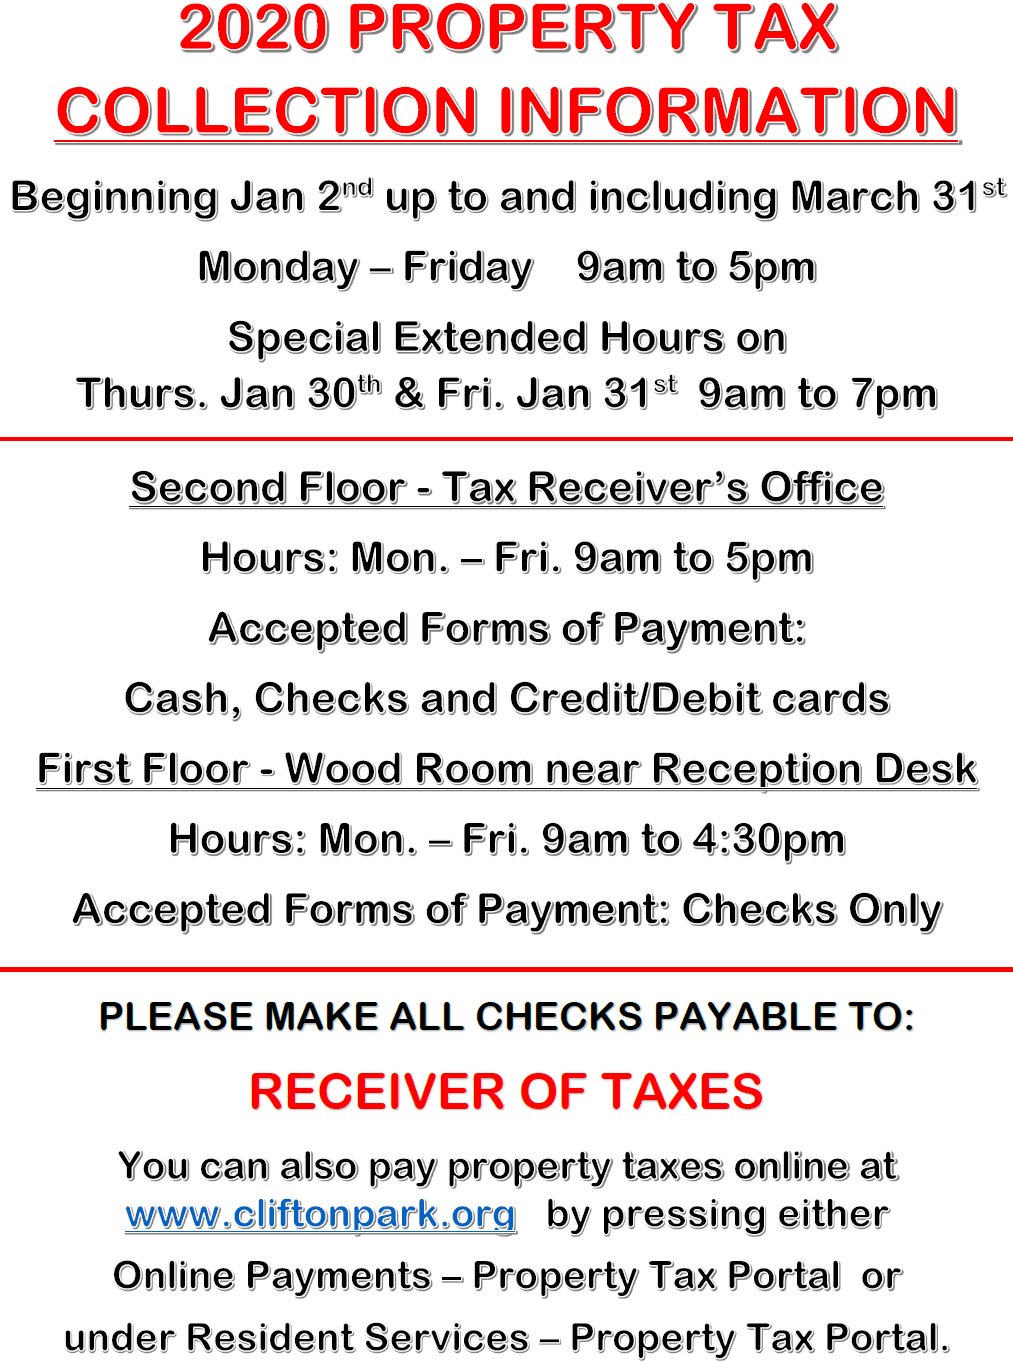 2020 Property Tax Collection Information